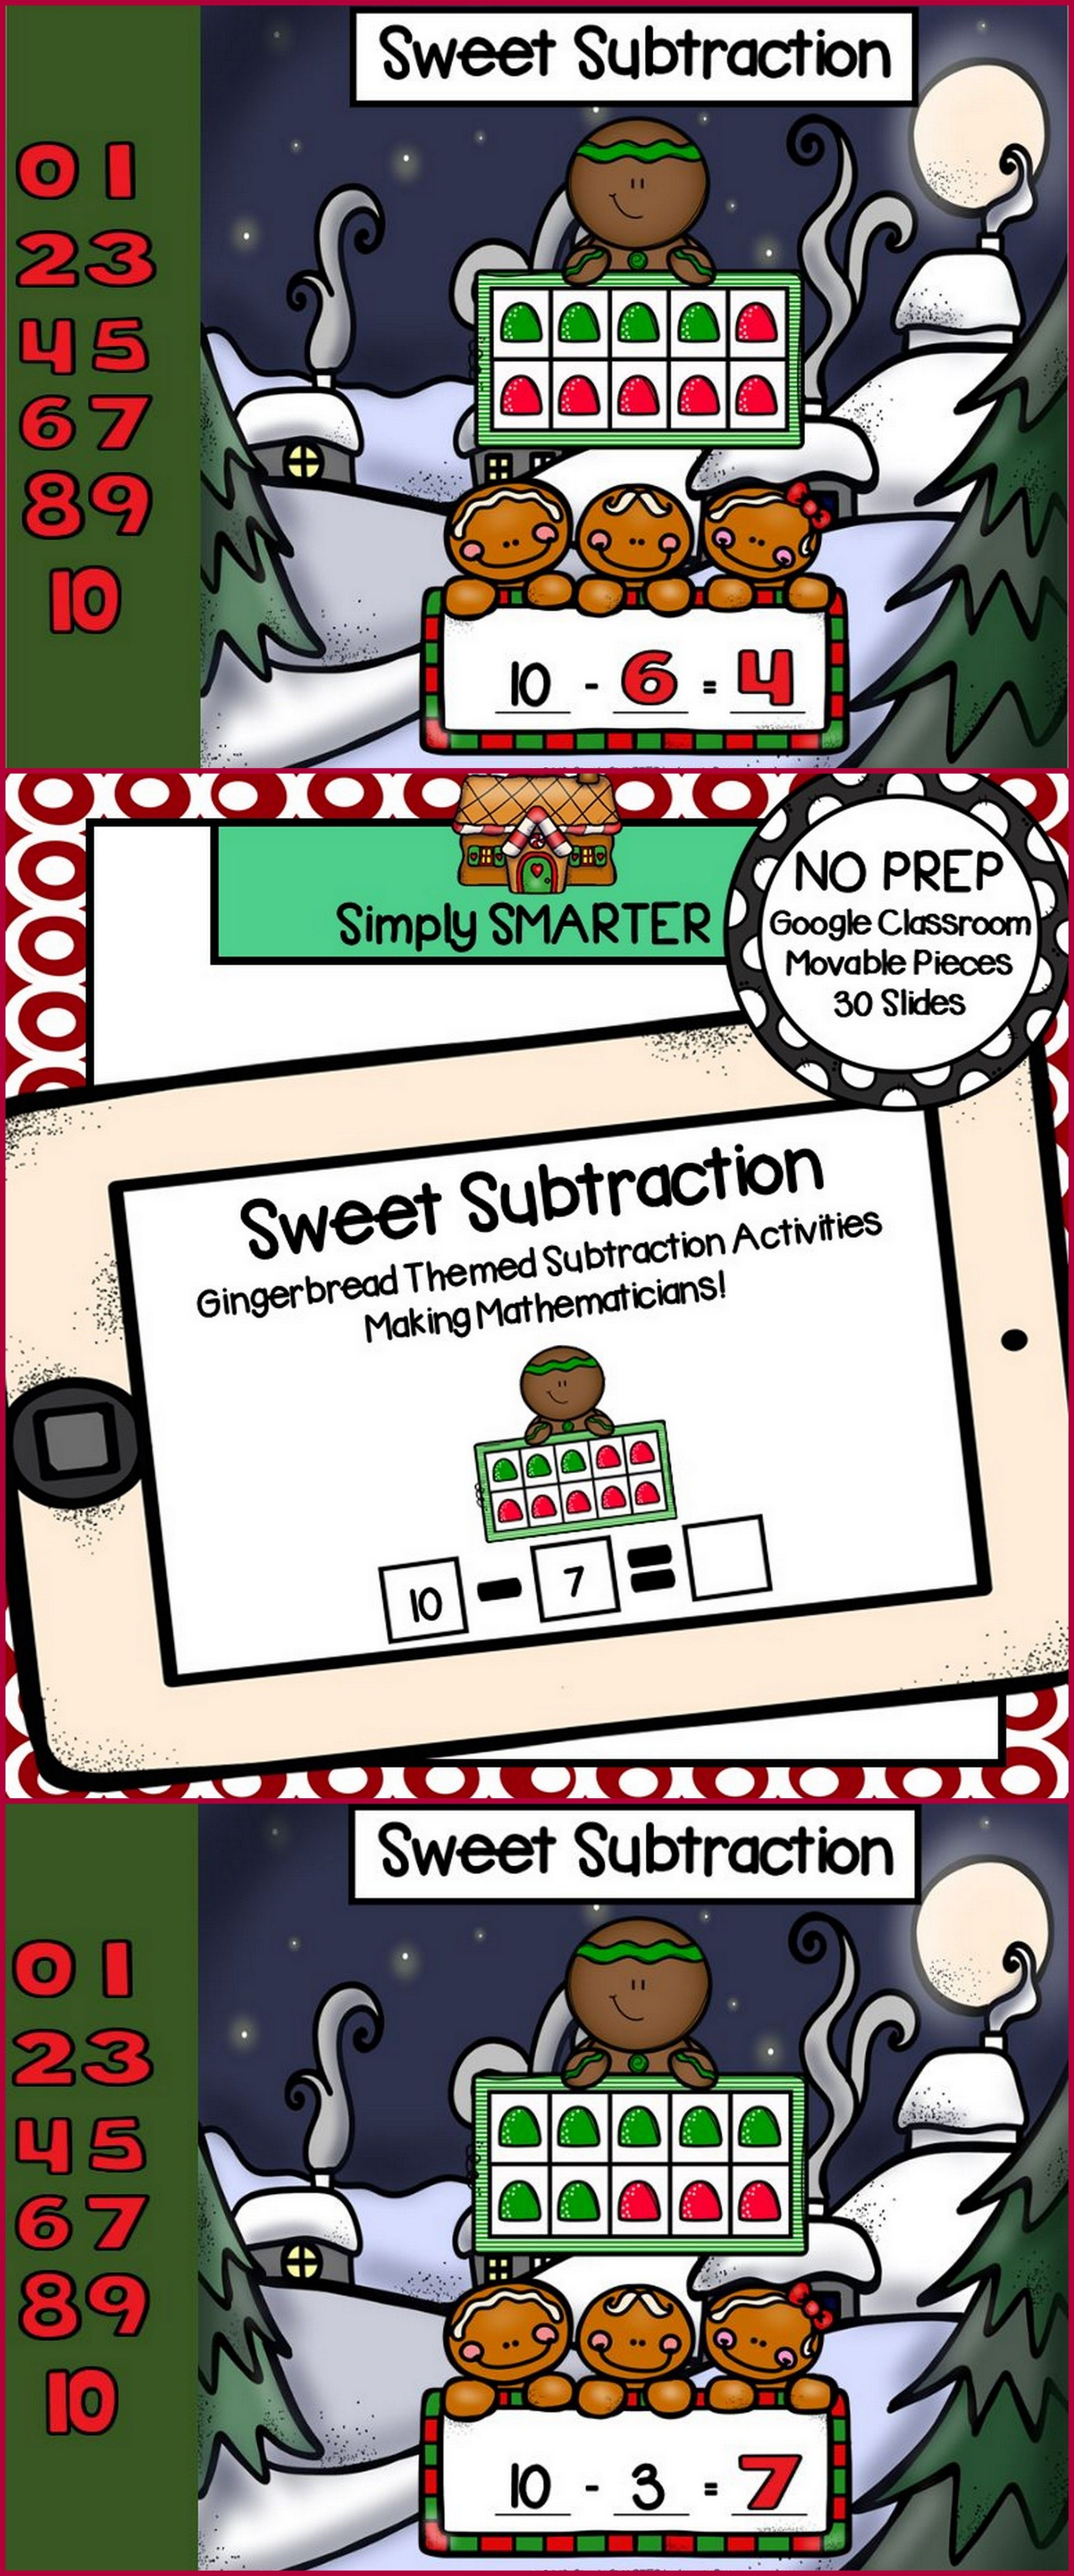 Gingerbread Themed Subtraction Activities For